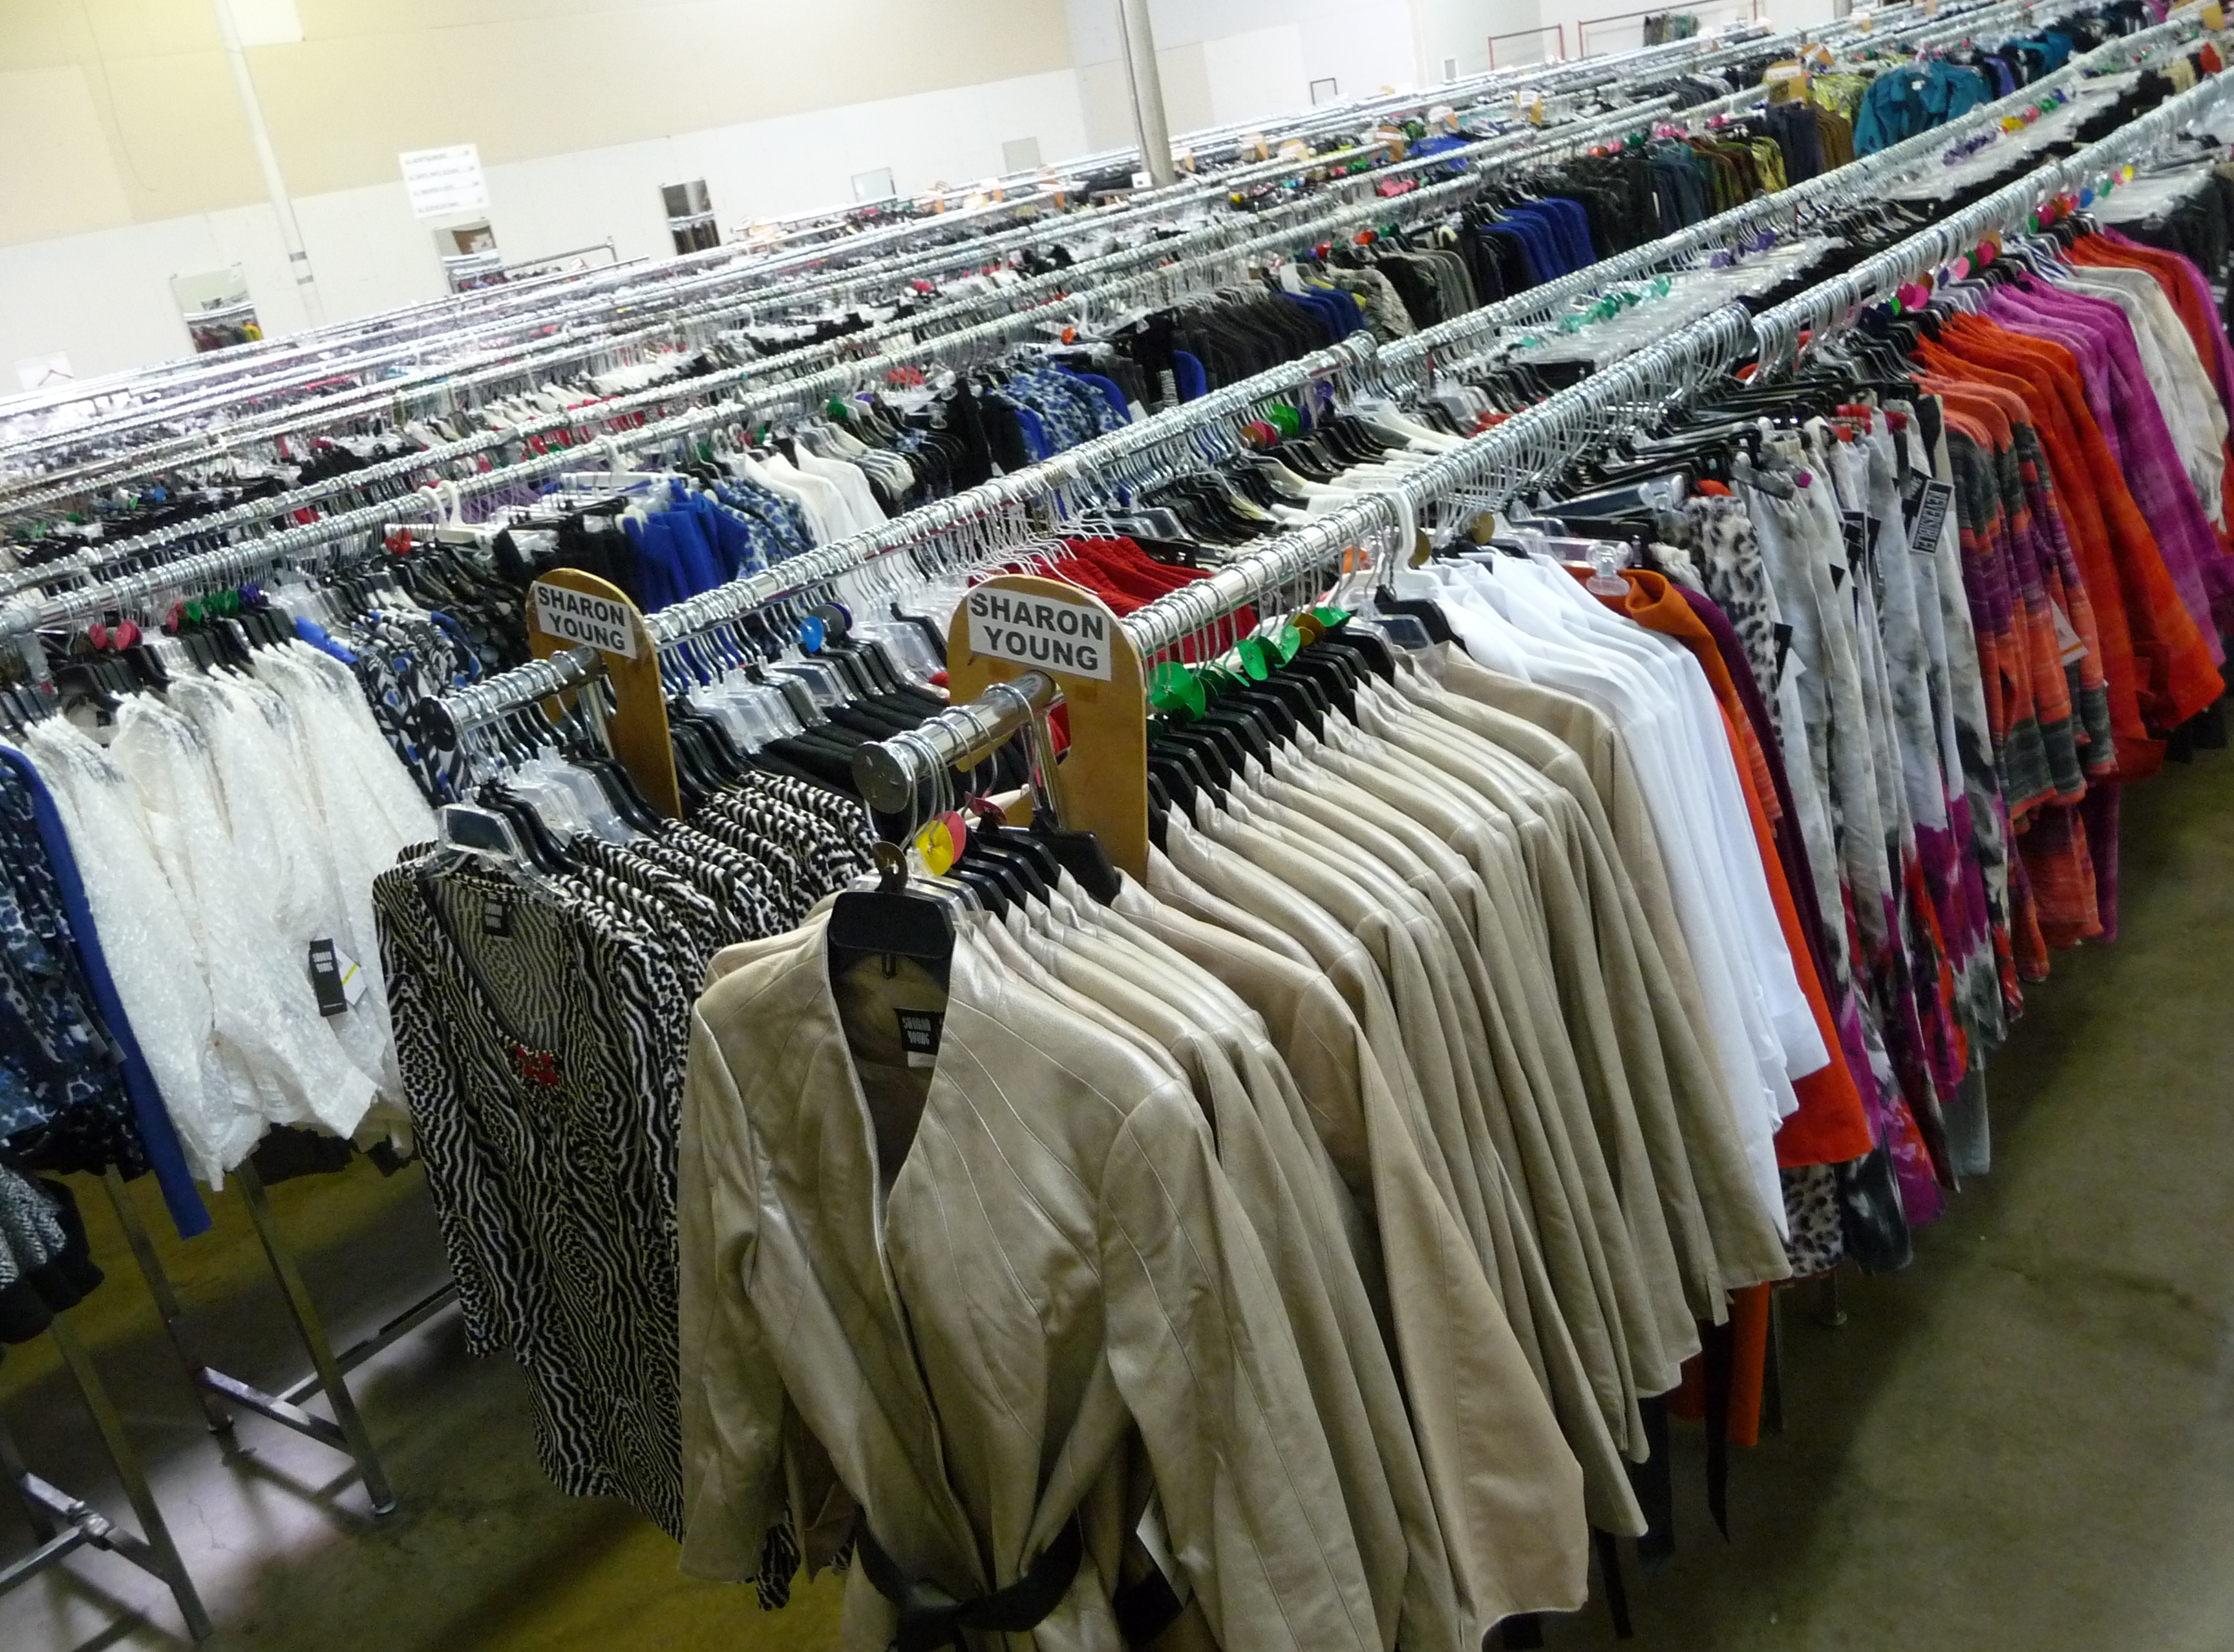 Wholesale Apparel Buy wholesale and save on apparel today at cheap discount prices. WholesaleMart is a wholesale distributor, importer and supplier of bulk apparel and wholesale products.